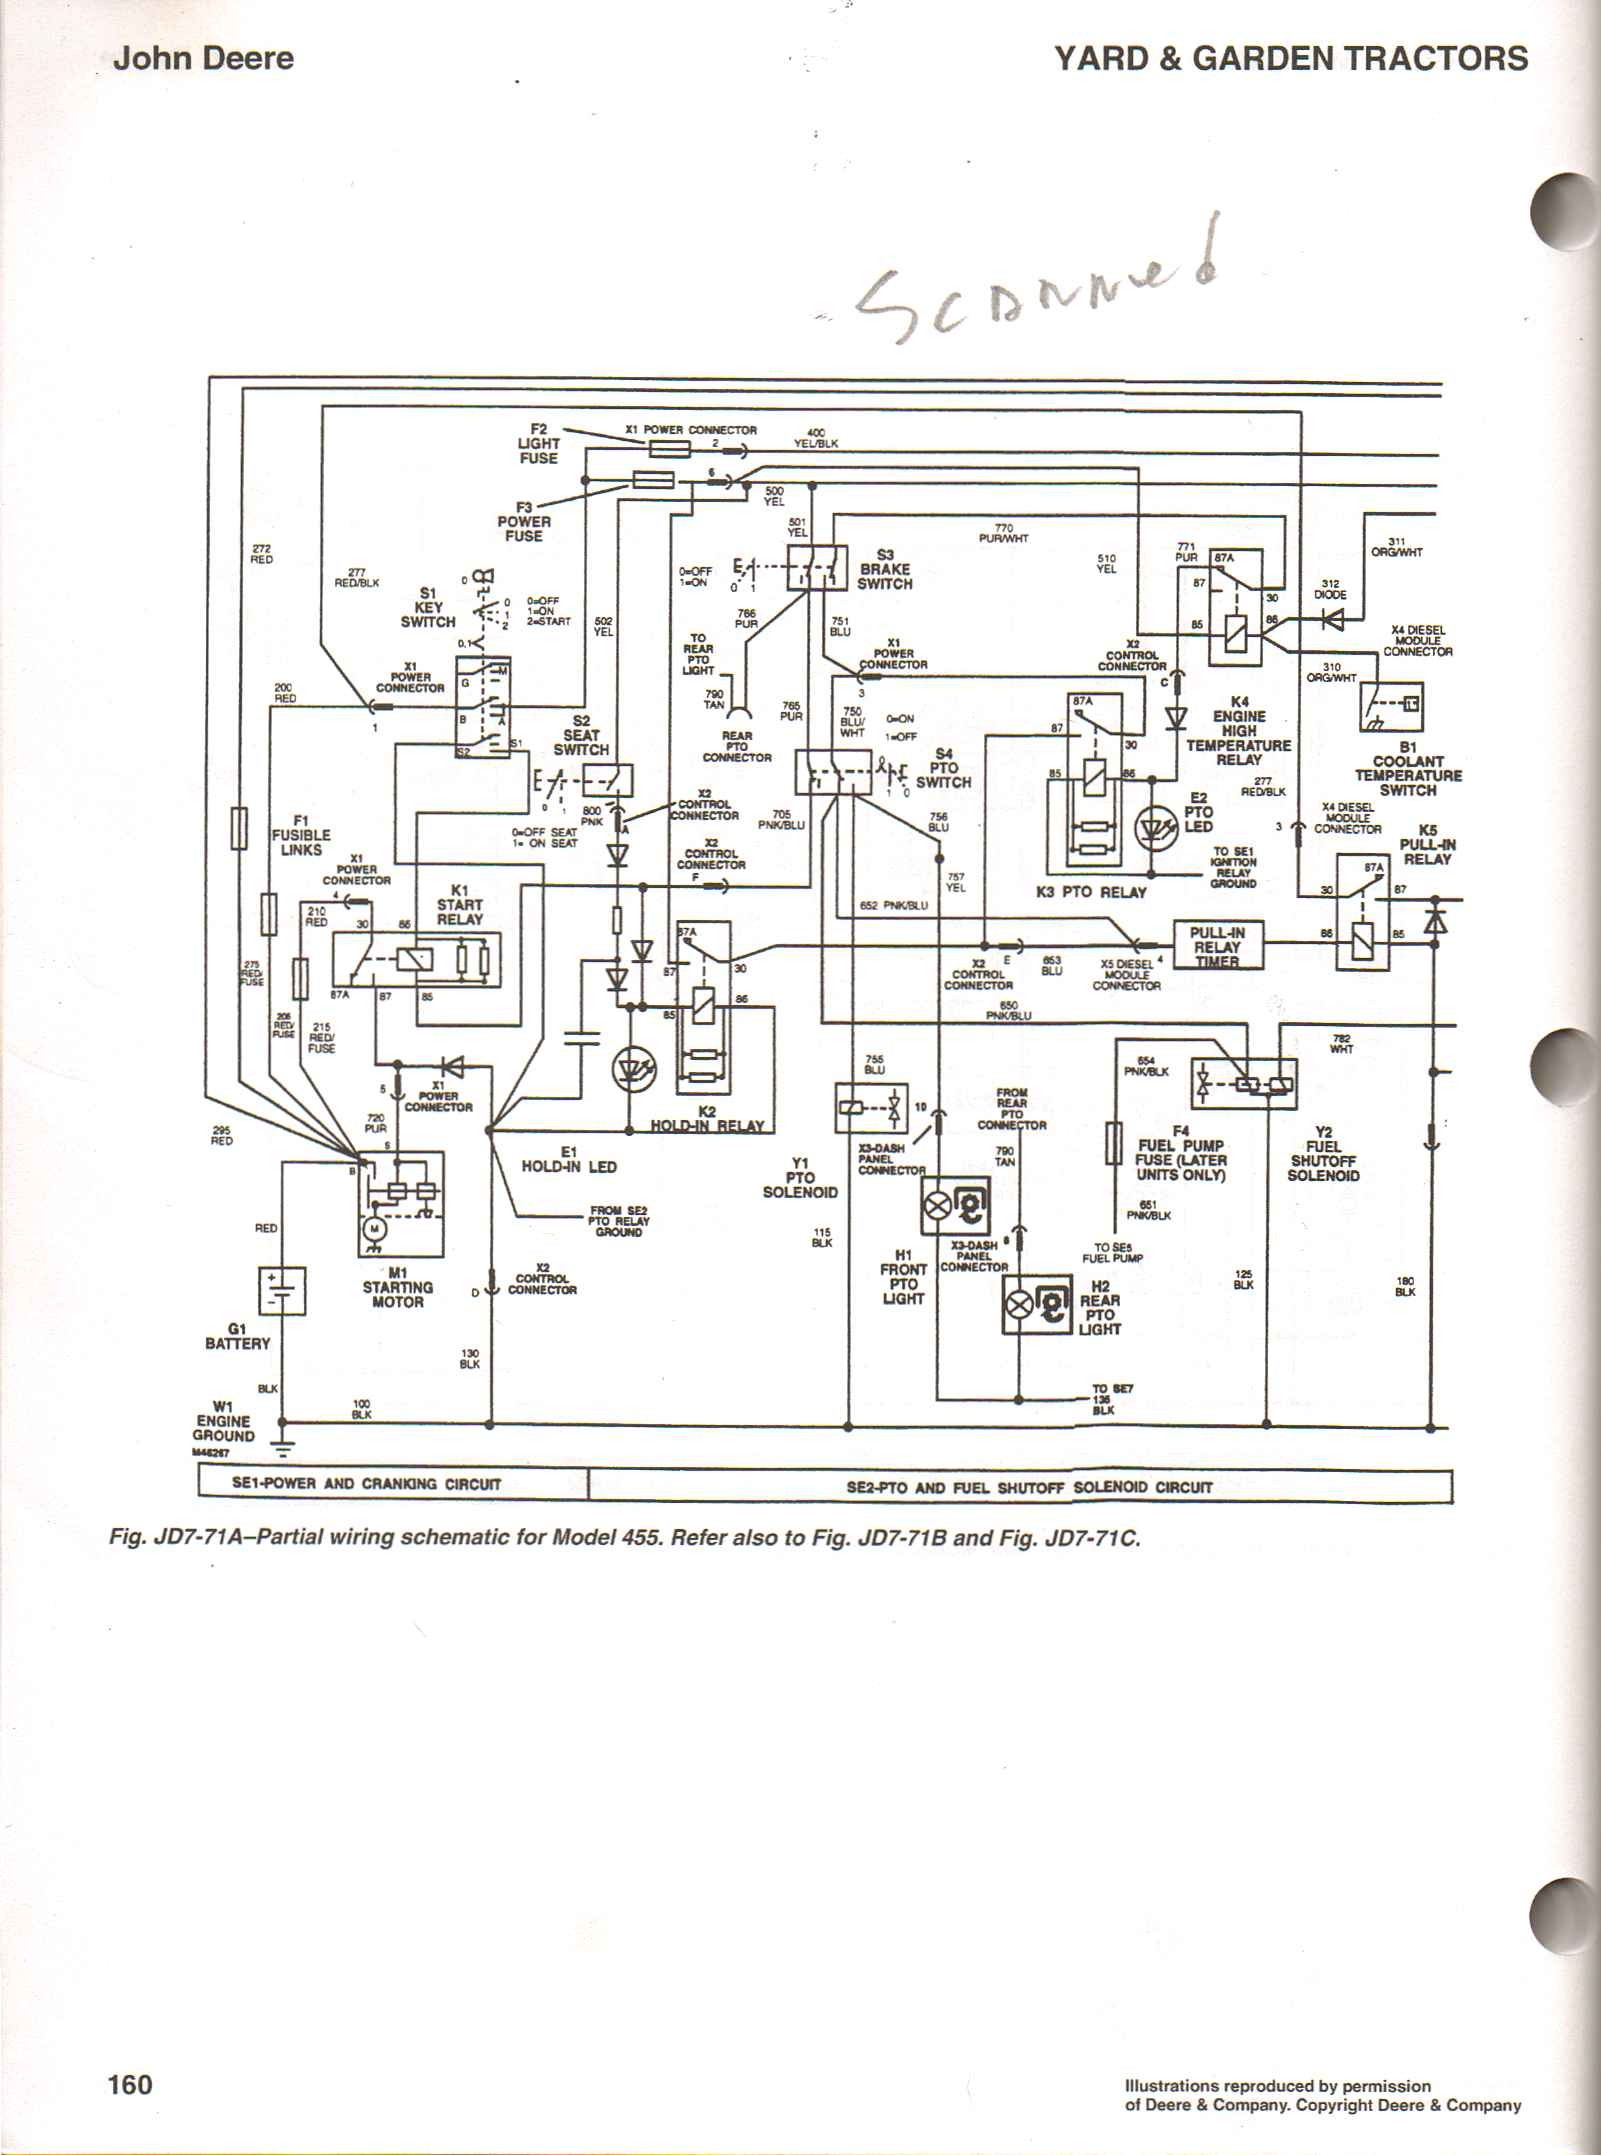 John Deere 445. Wiring Diagram B2network Co